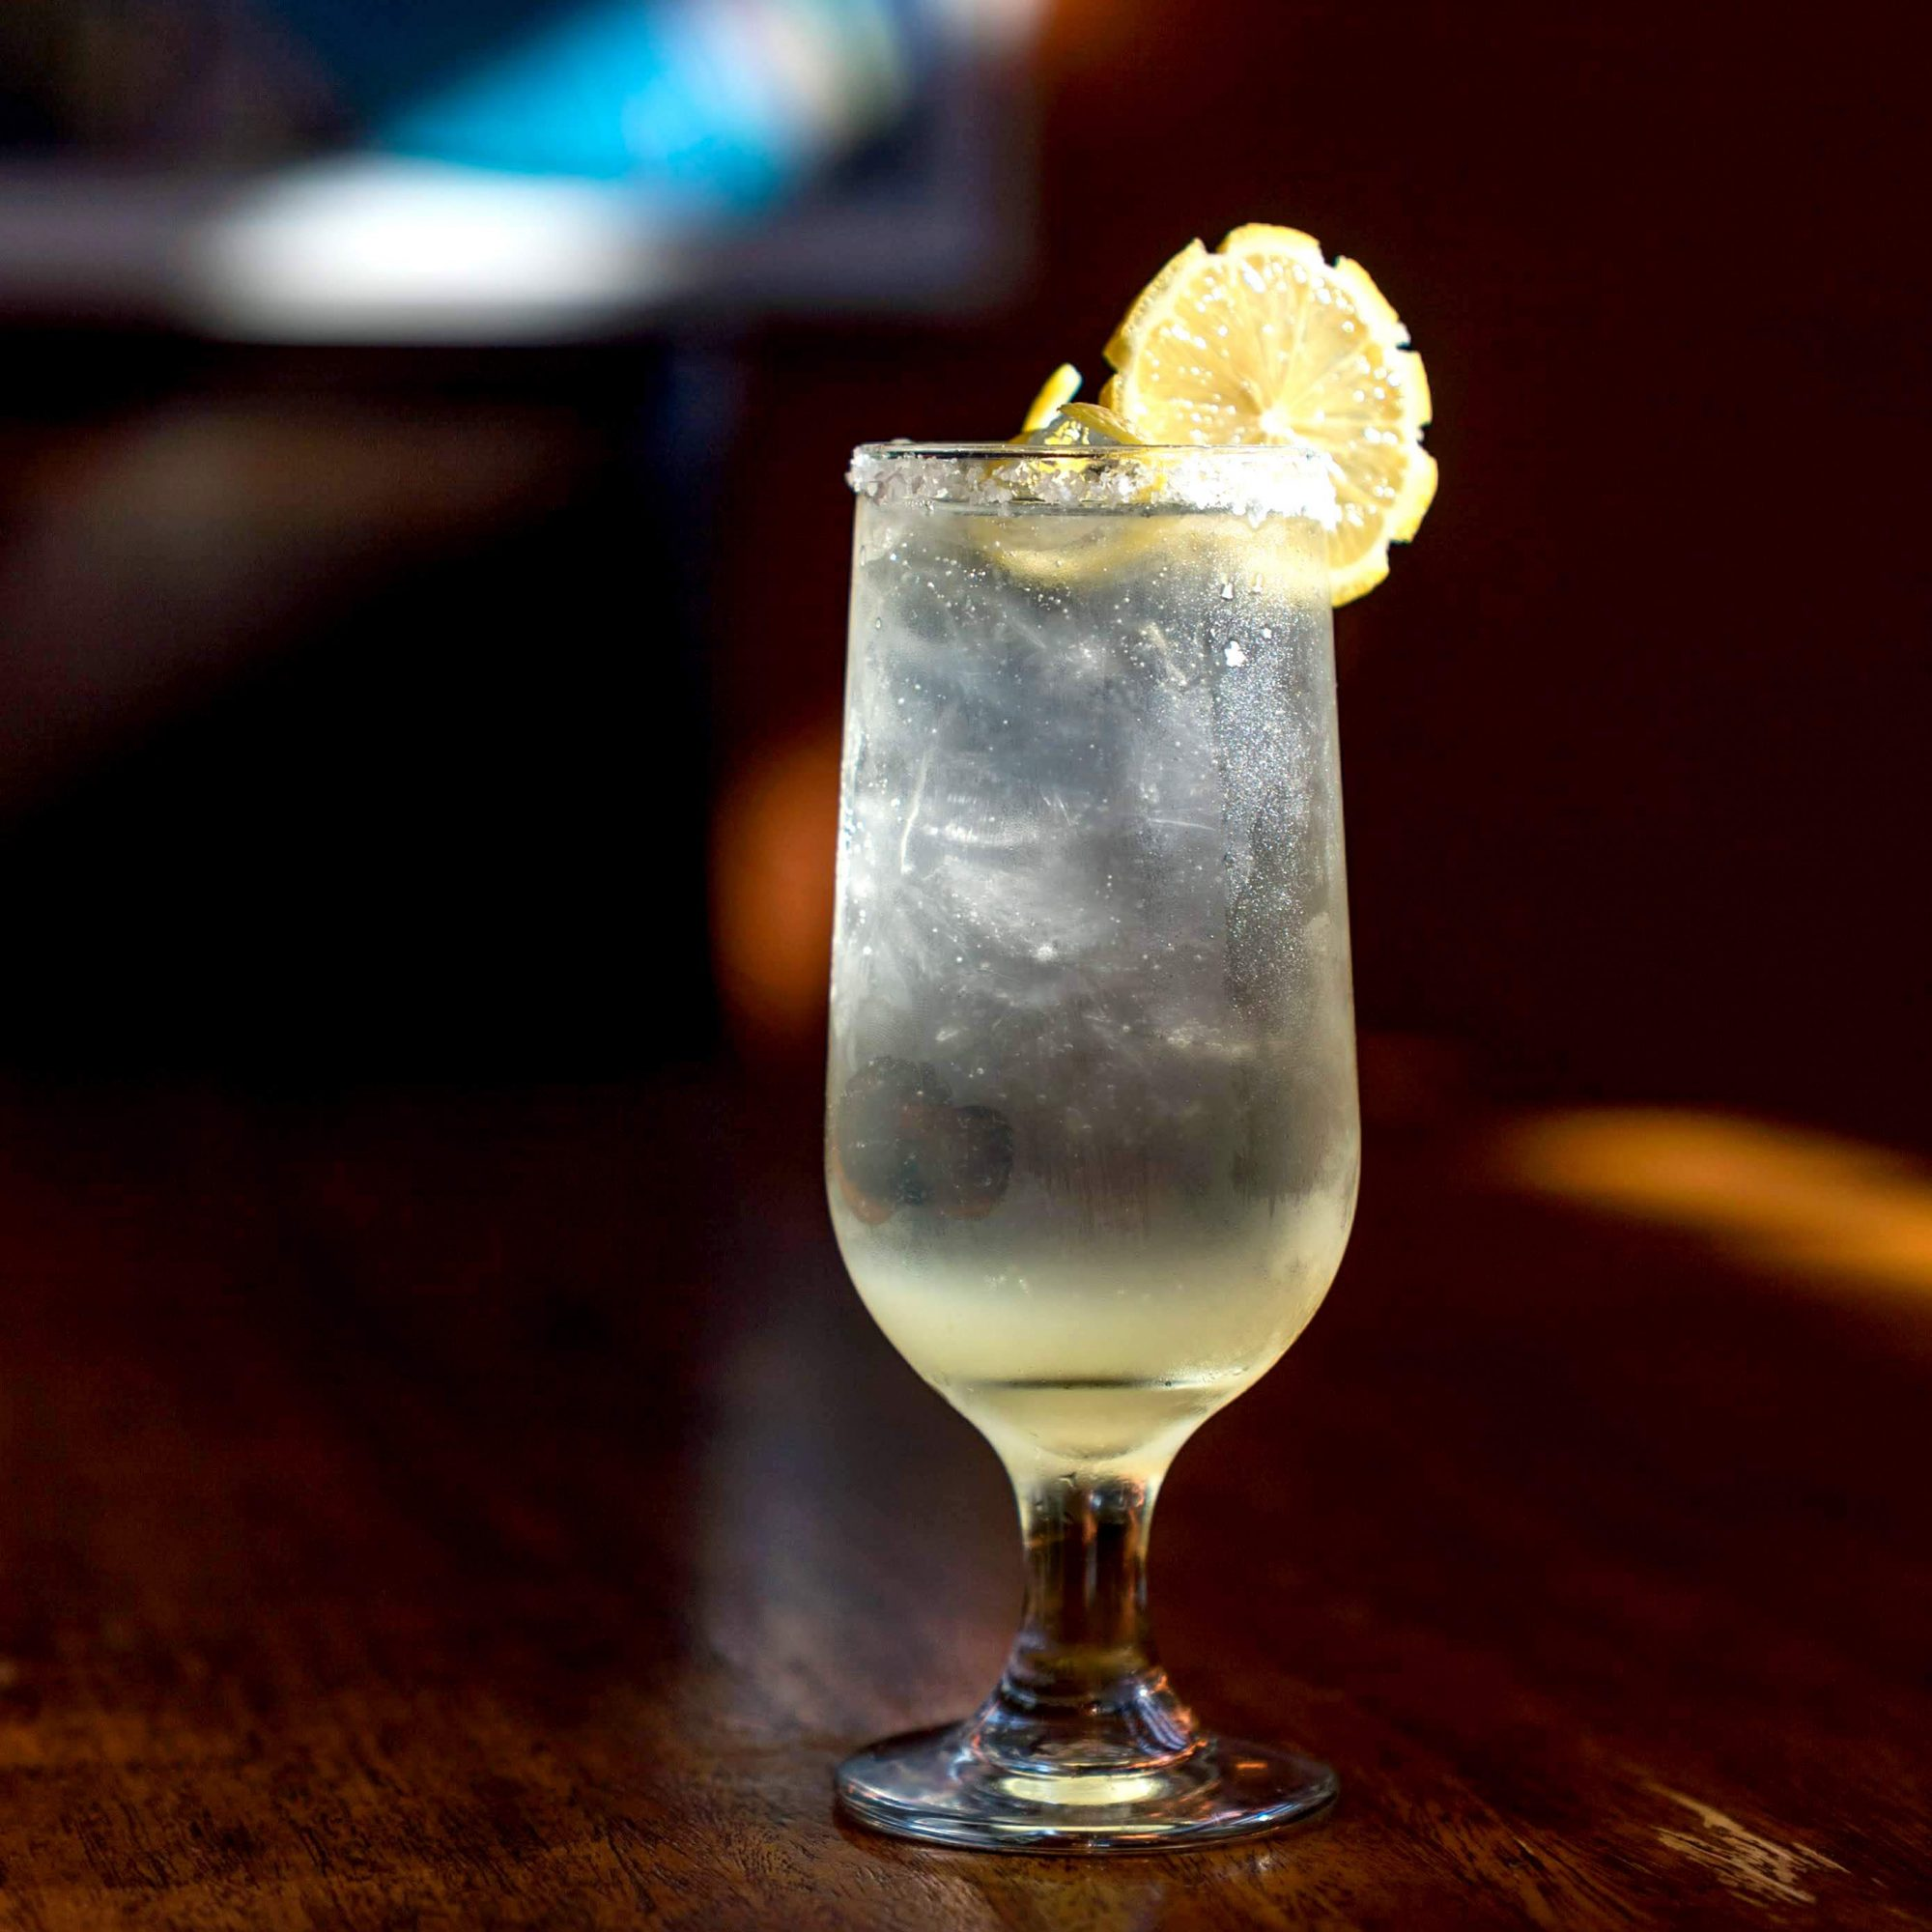 The Chilton Cocktail